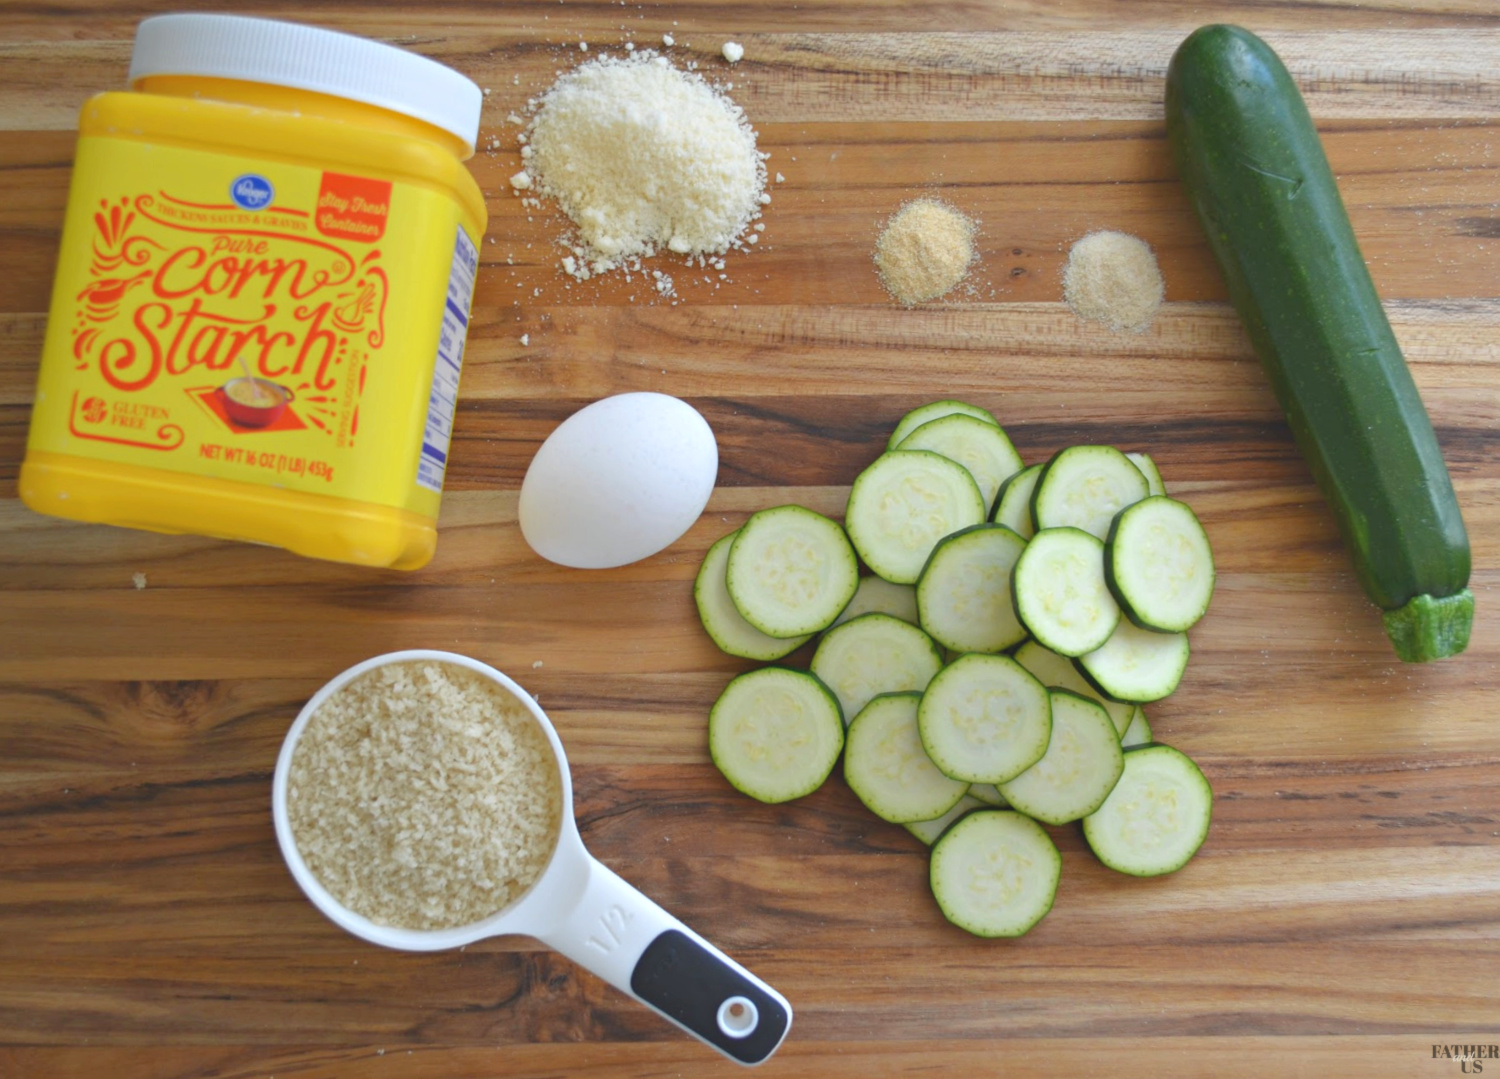 Air Fryer Zucchini Chips Ingredients include corn starch panko bread crumbs and garlic powder